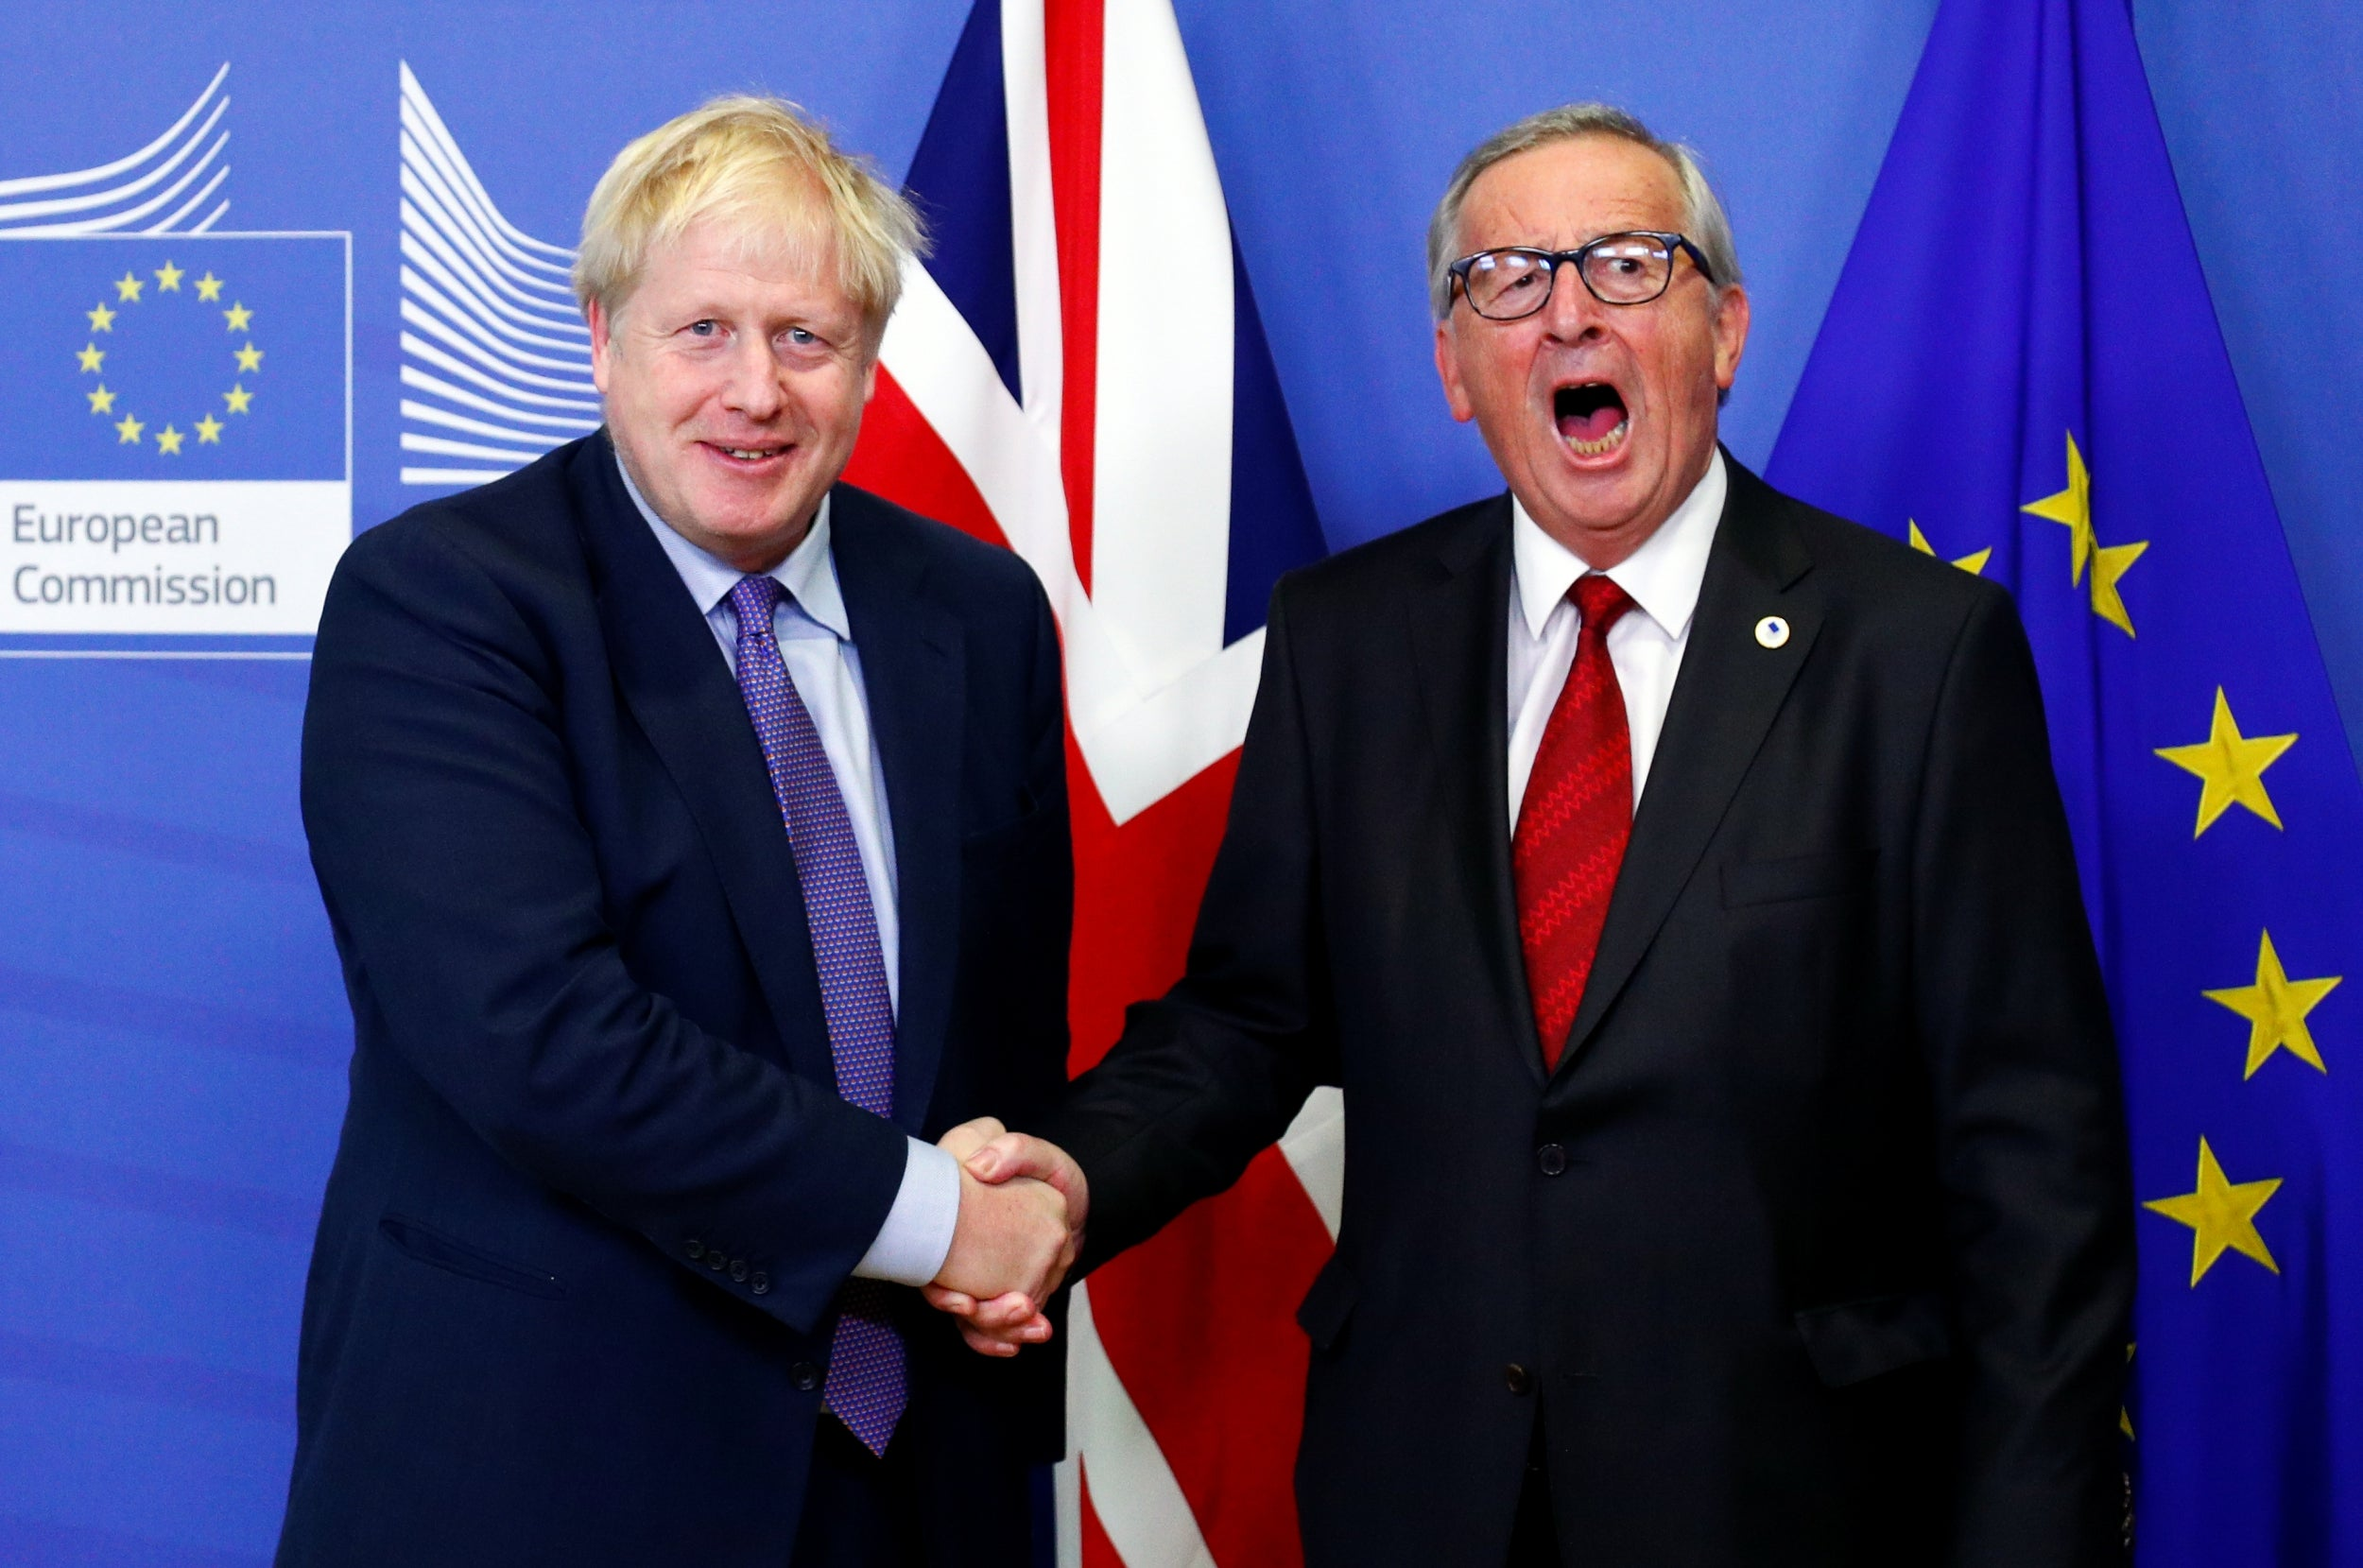 It took less than four minutes for Boris Johnson's Brexit deal to die